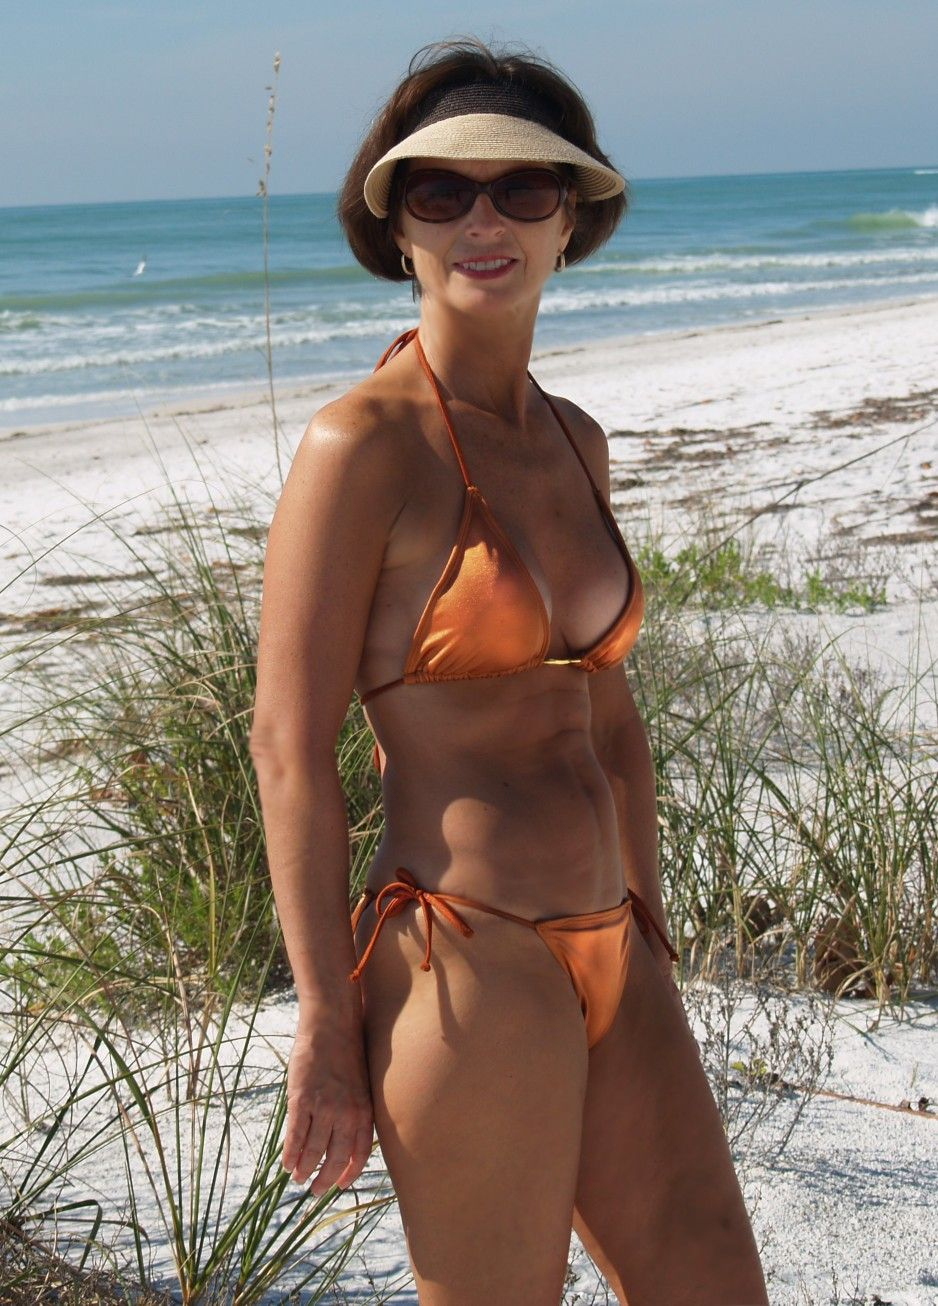 pinseamus milad on mature | pinterest | women bikini, nude and